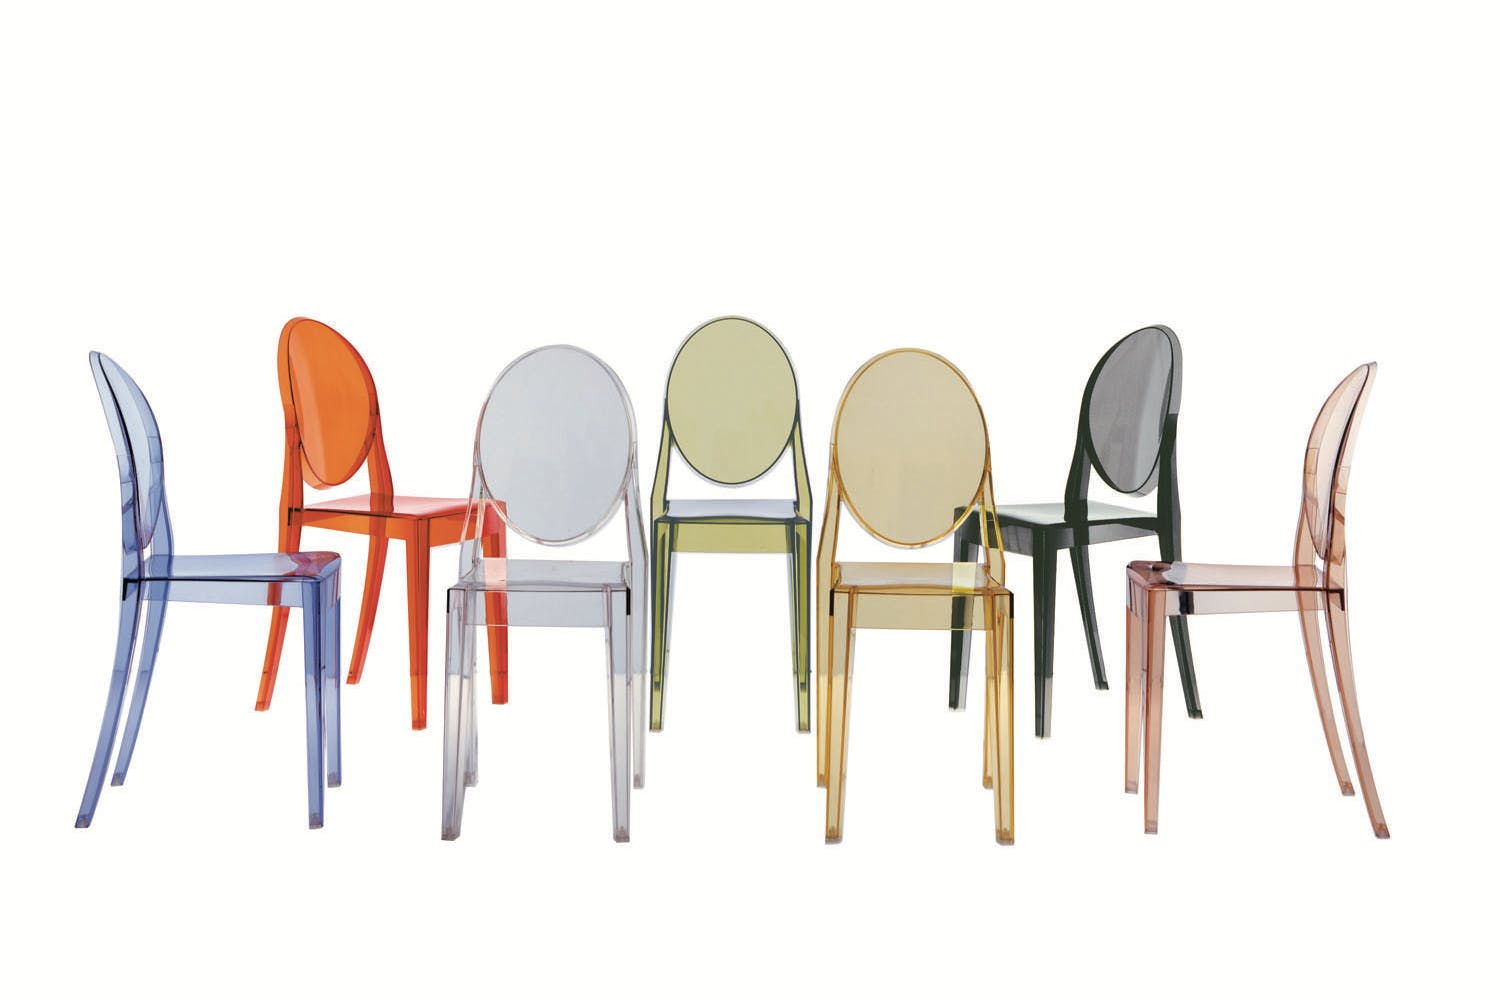 victoria ghost chair by philippe starck for kartell space furniture. Black Bedroom Furniture Sets. Home Design Ideas